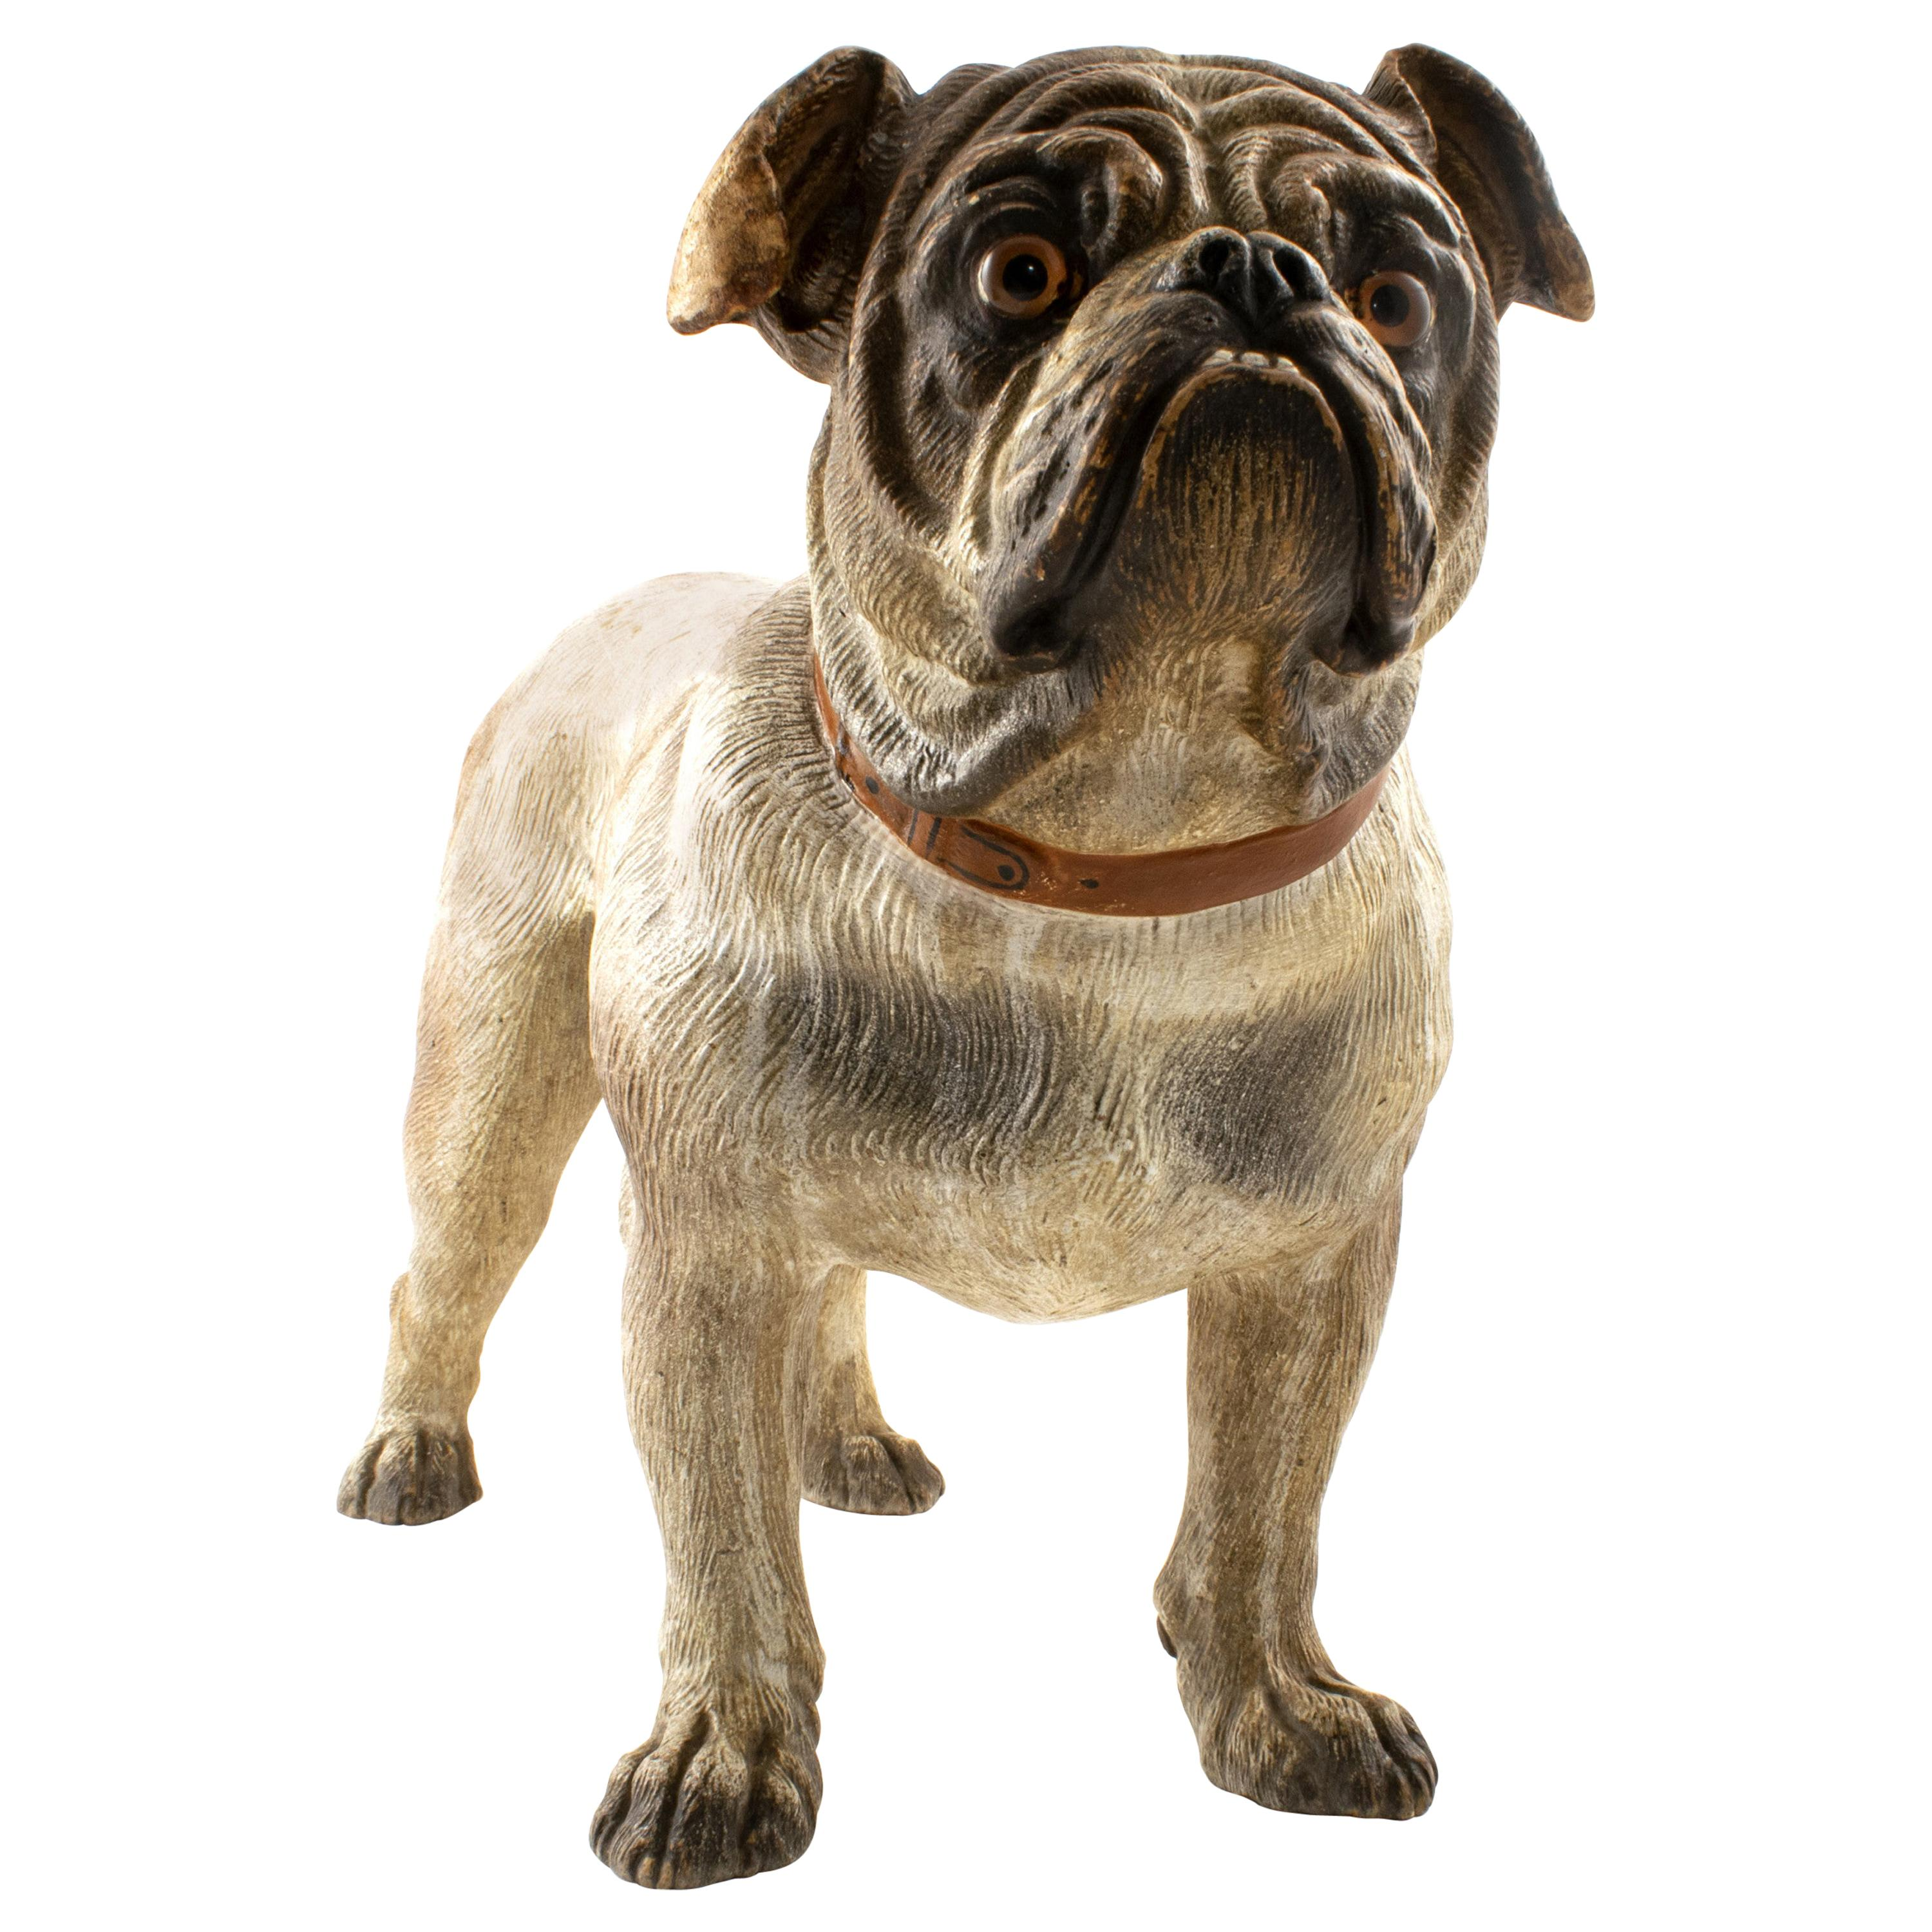 Austrian Cold Painted Terracotta Model of a Bulldog